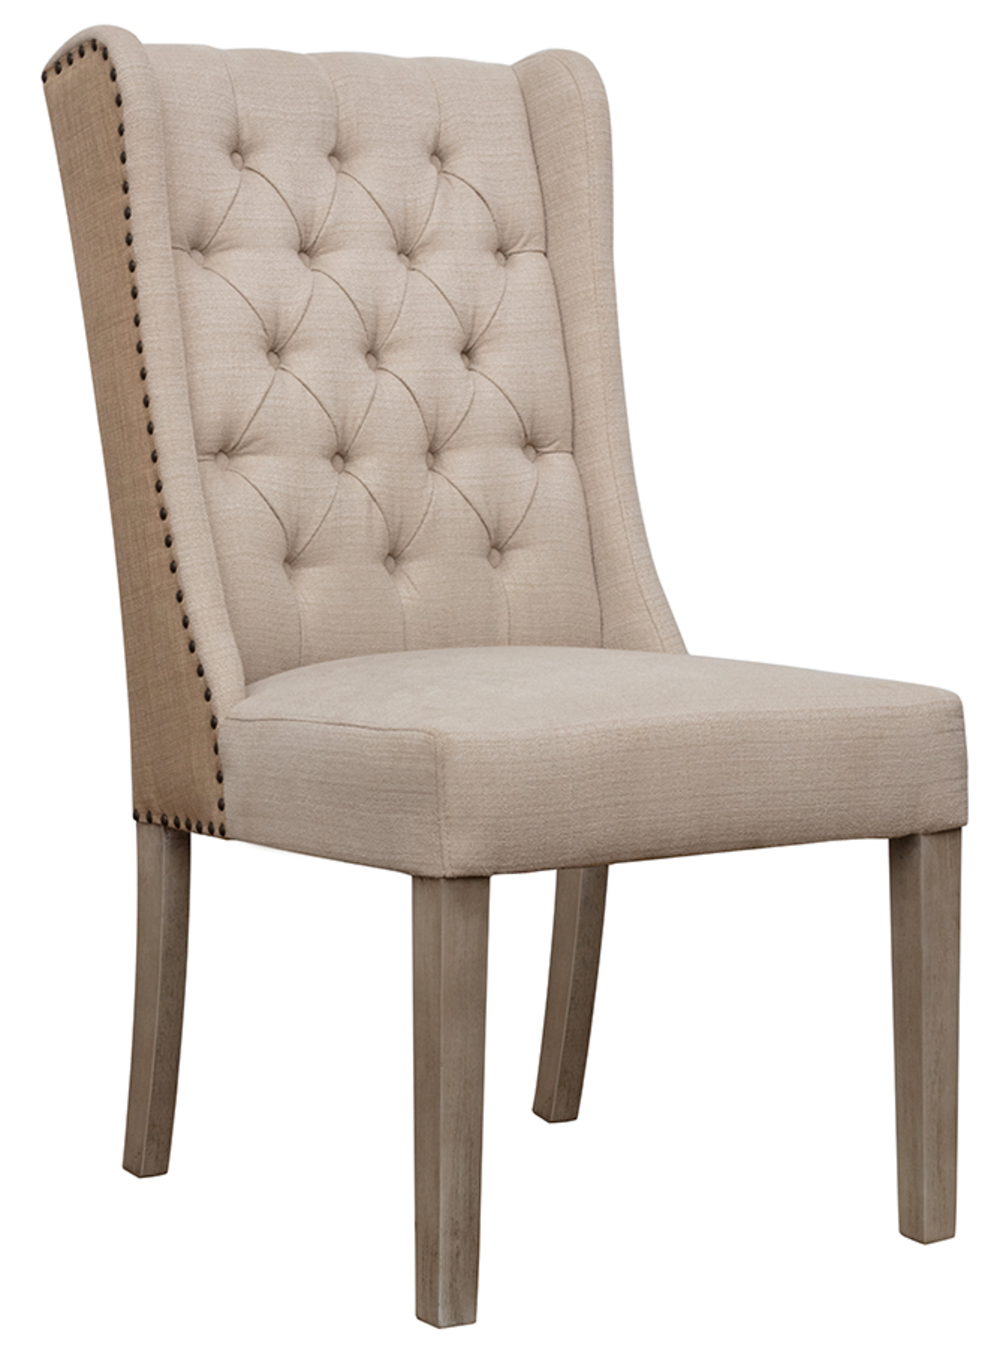 Dovetail Furniture - Diana Dining Chair